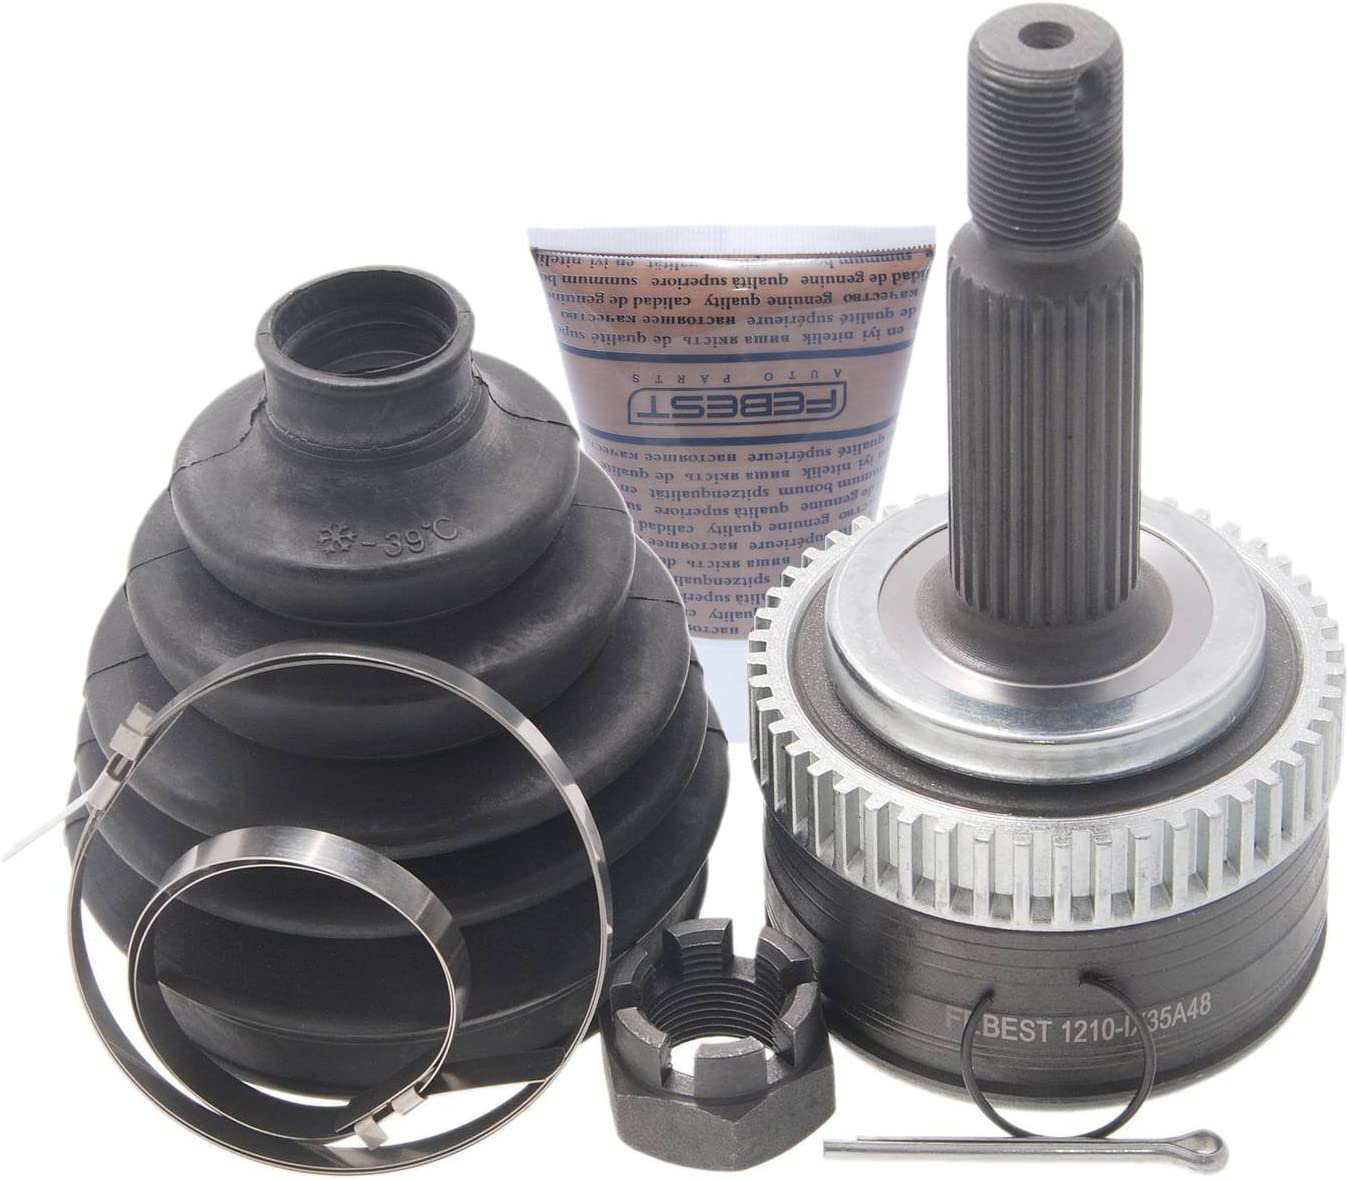 49501-2S300 495012S300 - Outer Cv Joint 24X64 Hyundai Max Popular popular 44% OFF 5X27 For